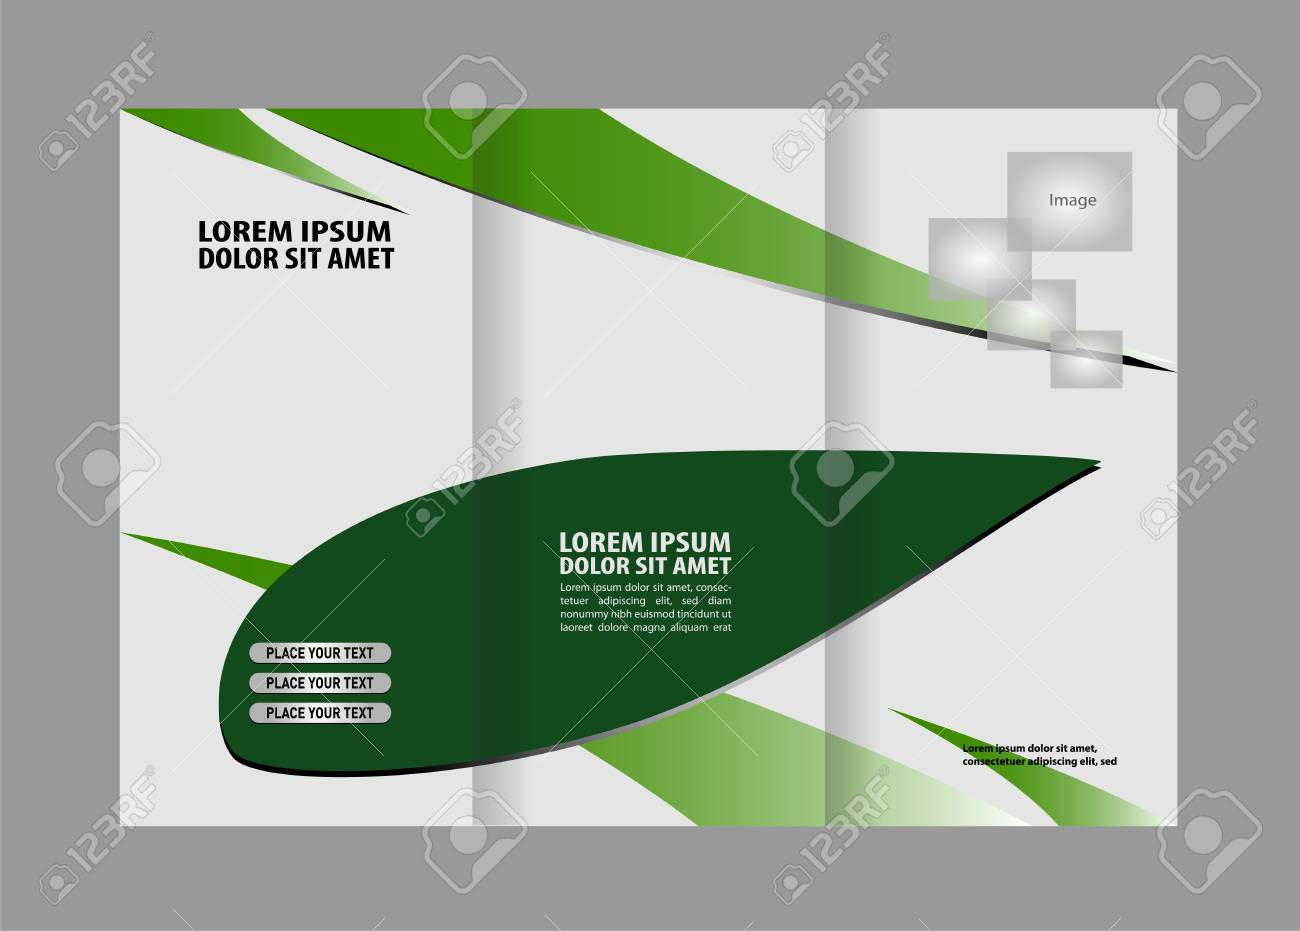 professional business trifold brochure template or flyer design